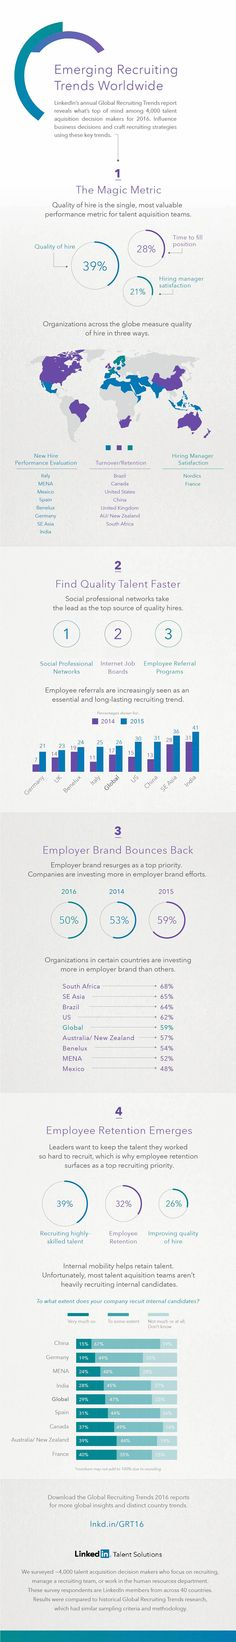 The fifth edition of the LinkedIn Global Recruiting Trends report surveyed over 4,000 talent acquisition professionals from 40 countries.